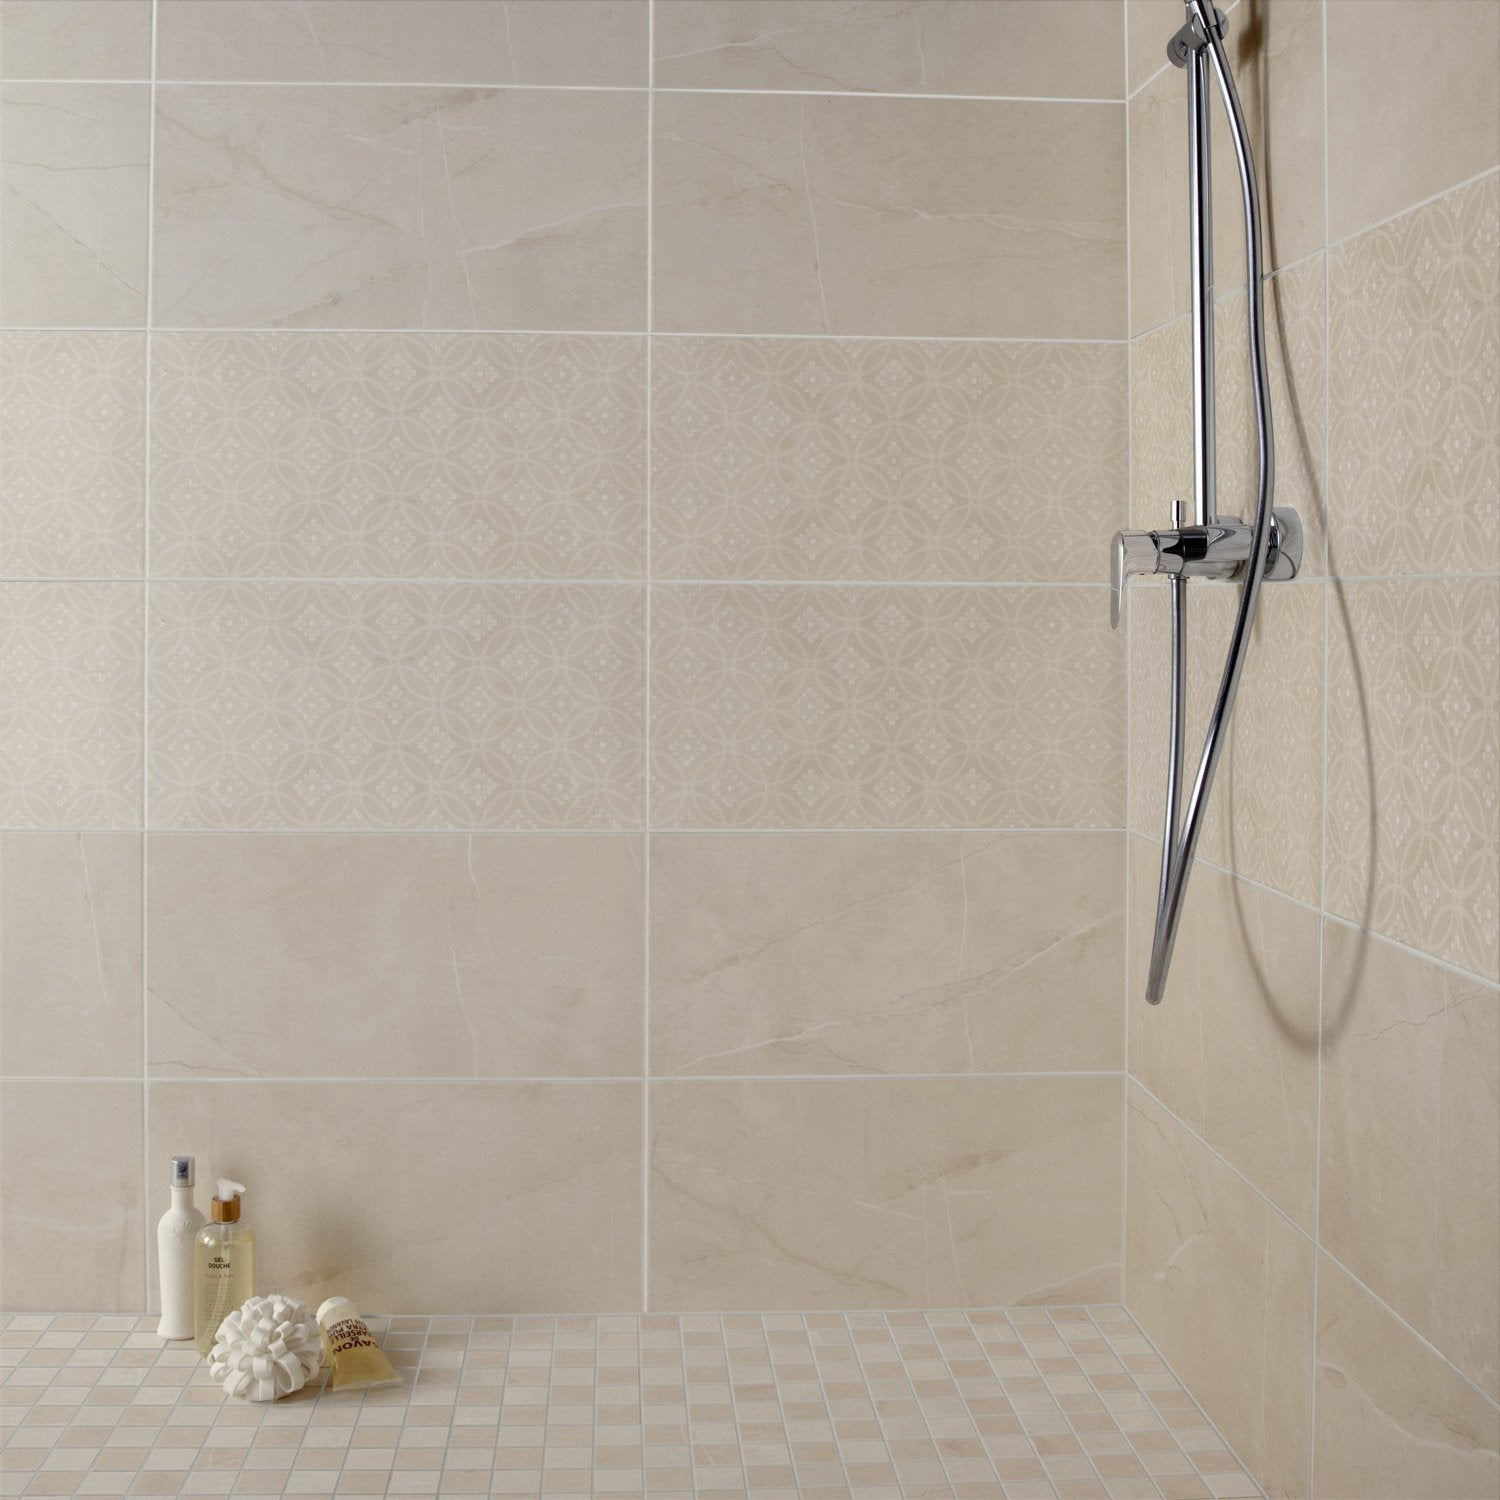 Fa ence mur beige colys e x cm leroy merlin for Carreaux faience